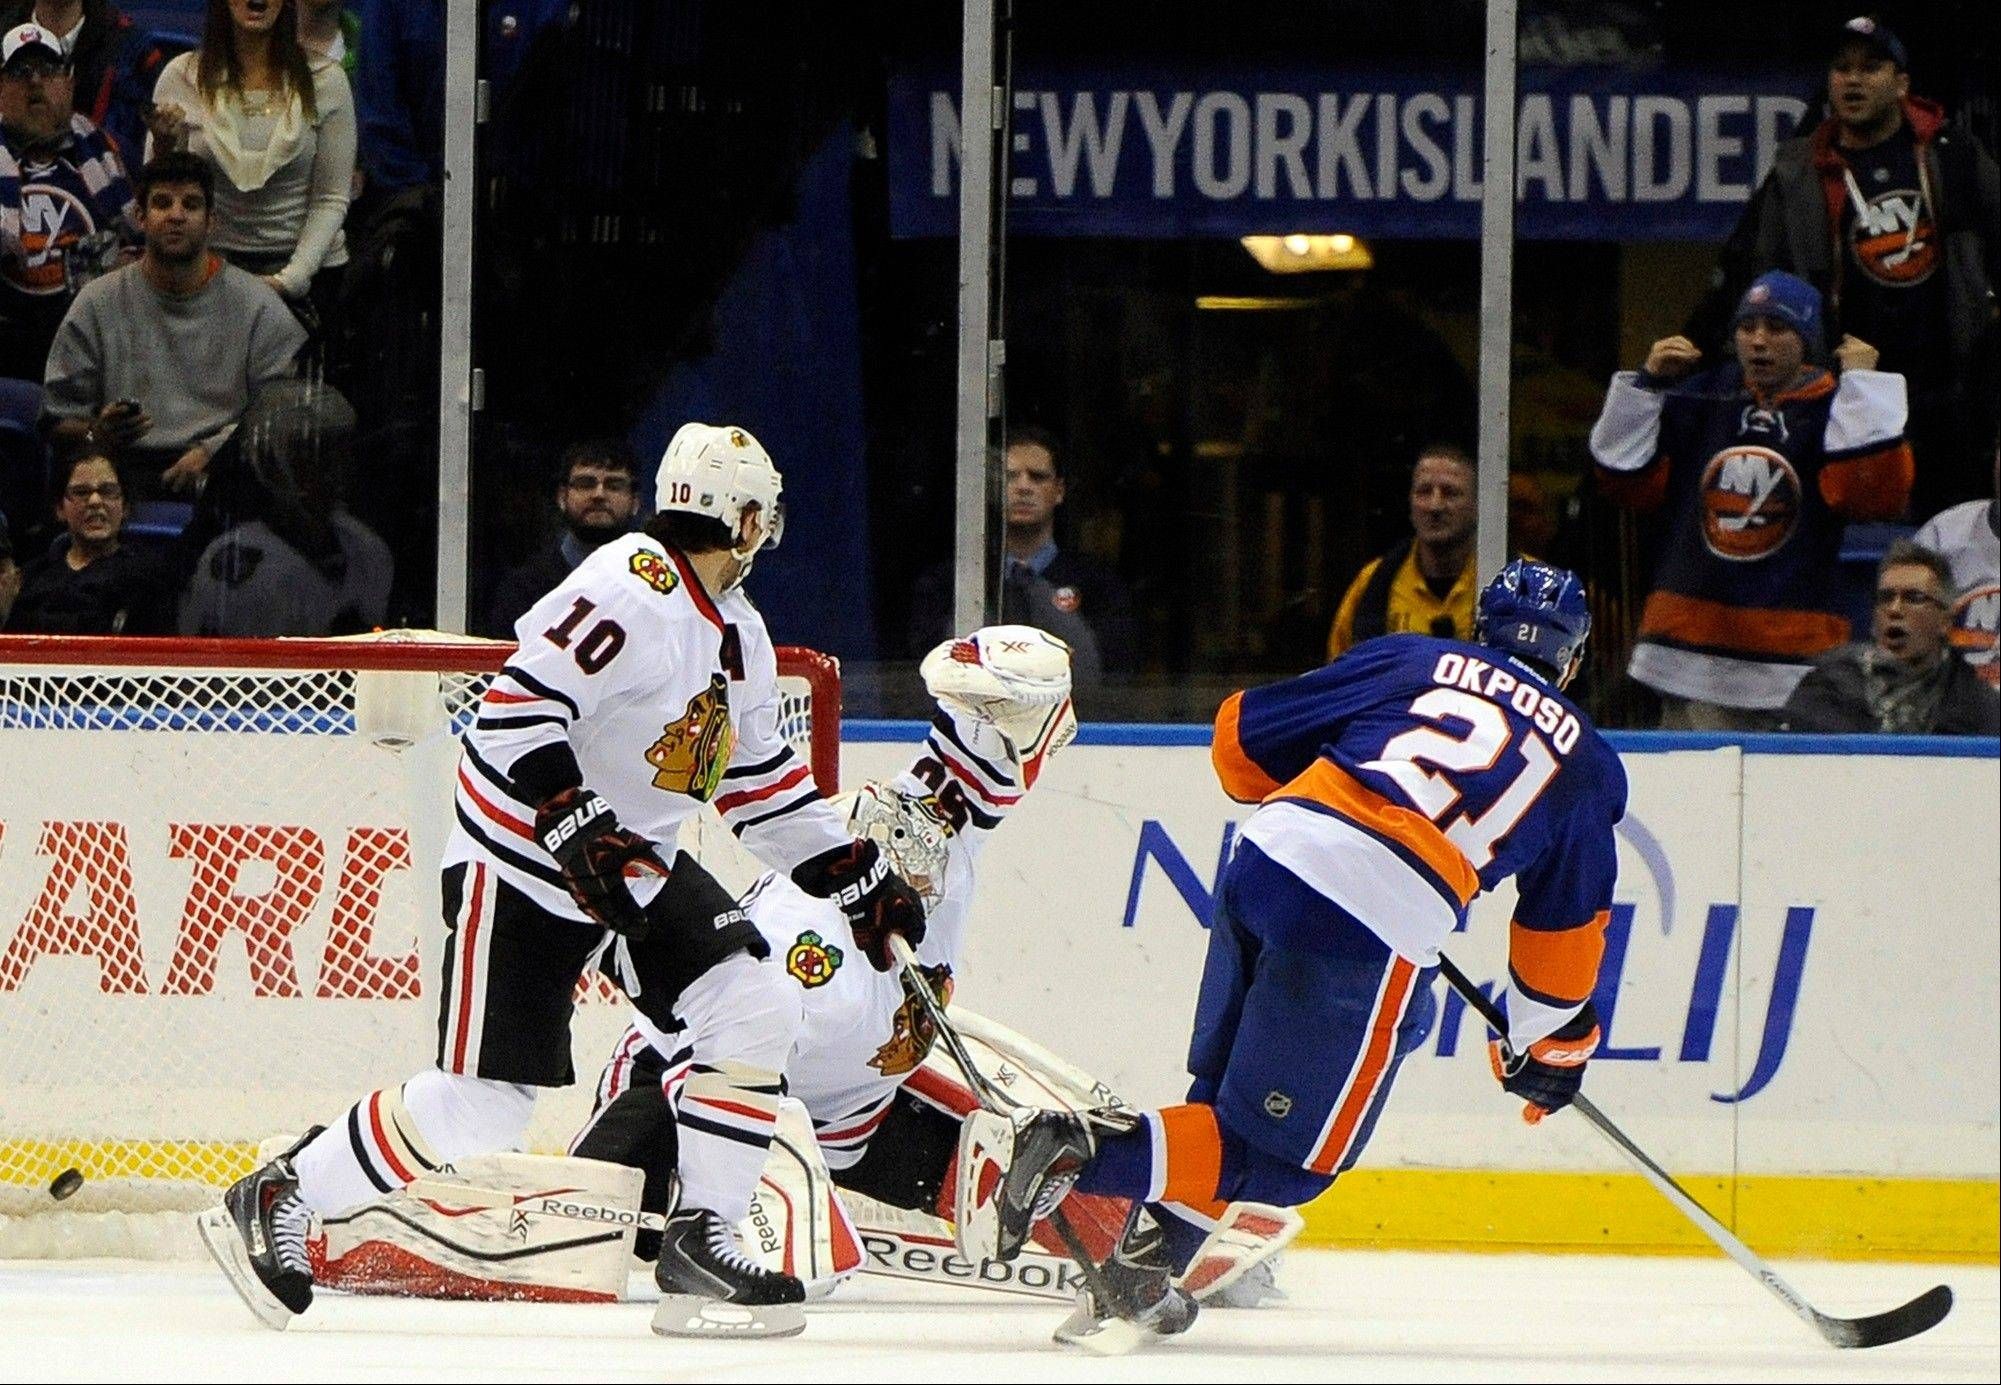 The Islanders' Kyle Okposo shoots the puck past Blackhawks goalie Corey Crawford as Patrick Sharp watches in overtime Thursday night. It was Crawford's first start since missing 10 games with a groin injury.